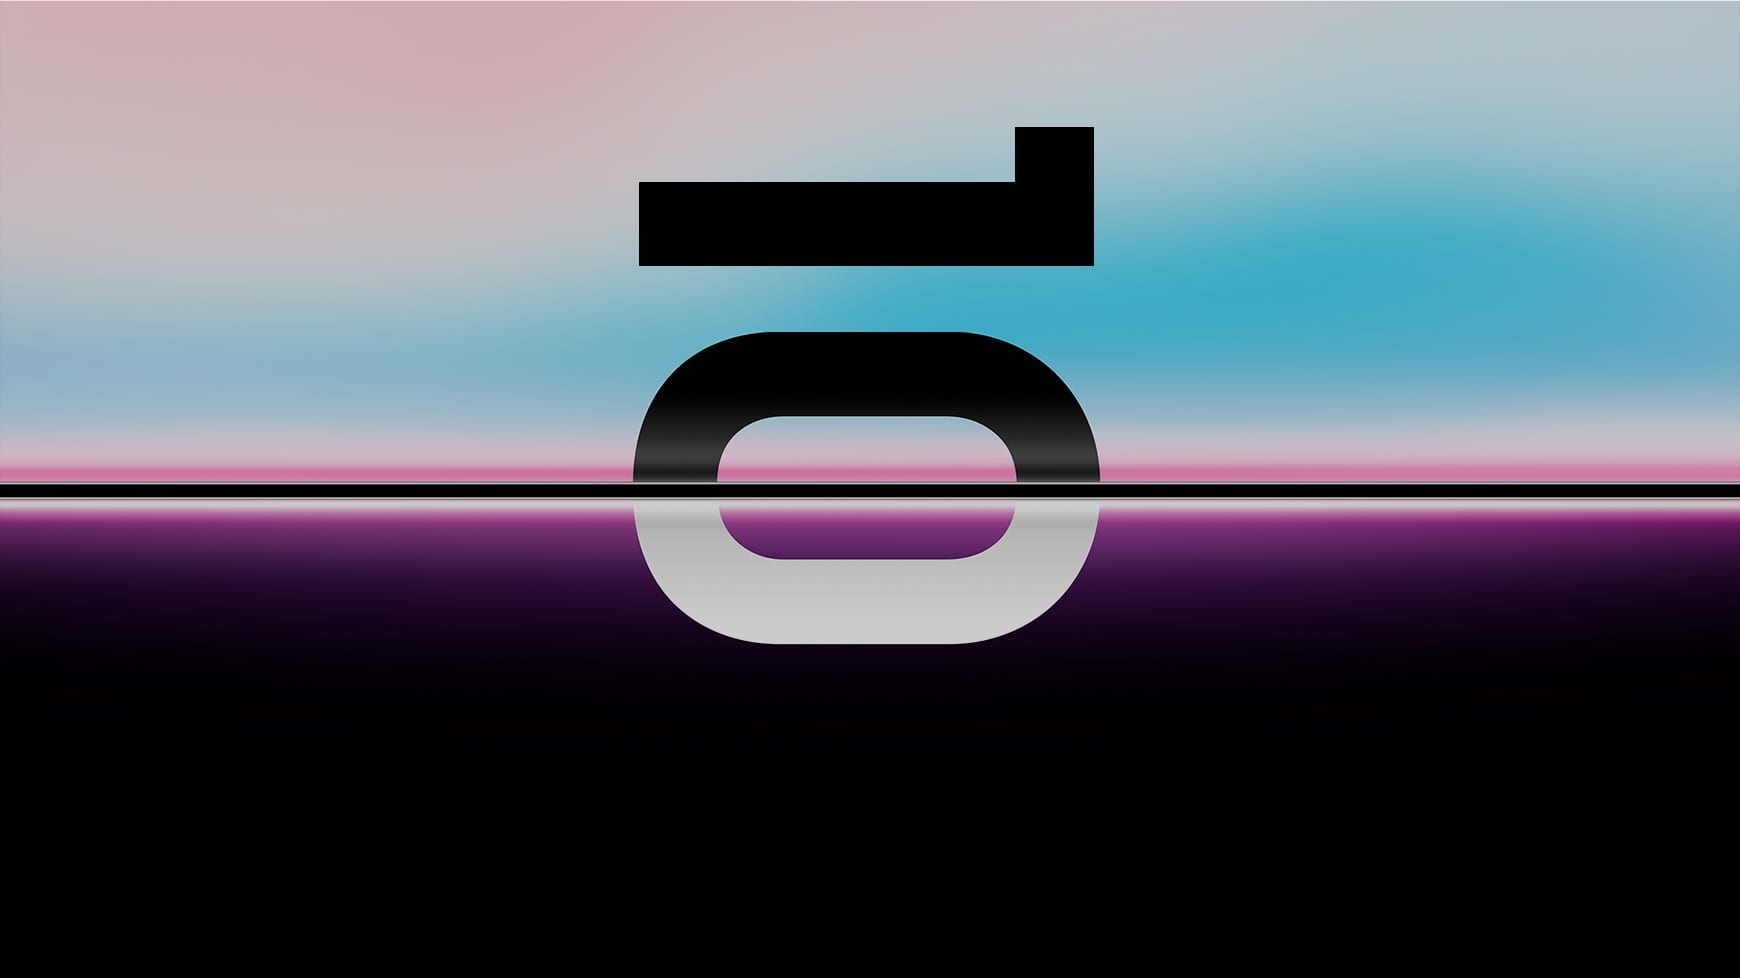 Samsung Galaxy S10 Official Wallpapers